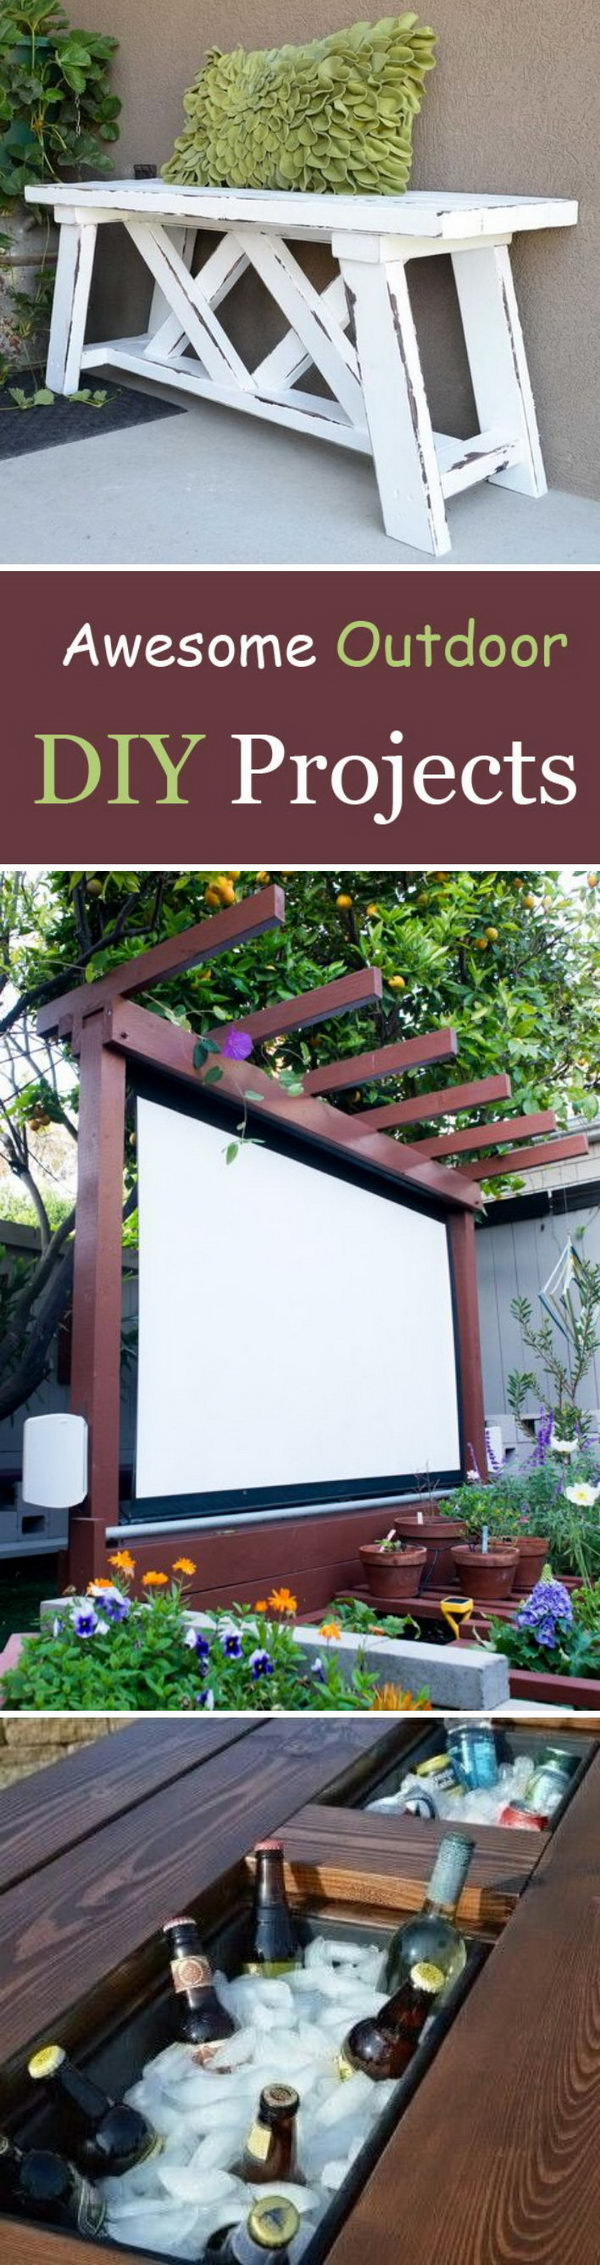 Awesome Outdoor DIY Projects - Outdoor diy projects